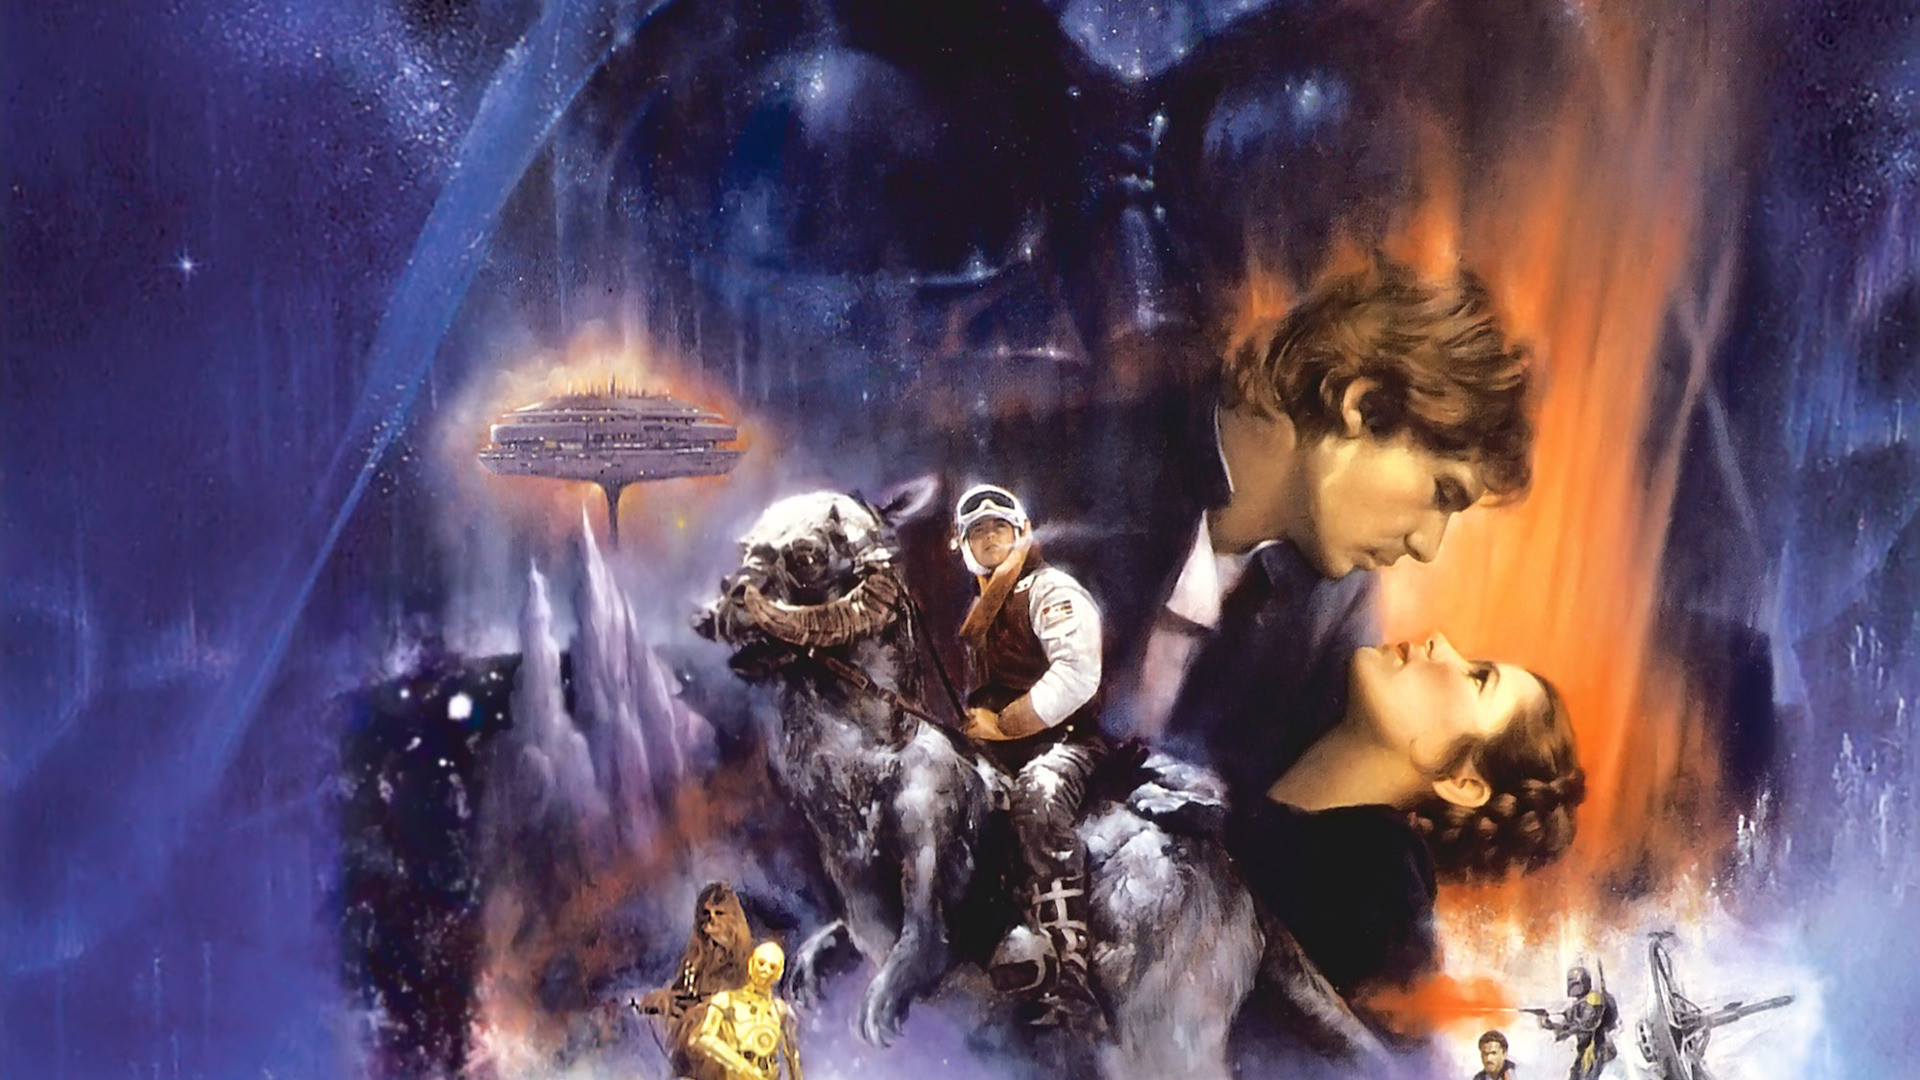 Empire Strikes Back Wallpaper 66 Images